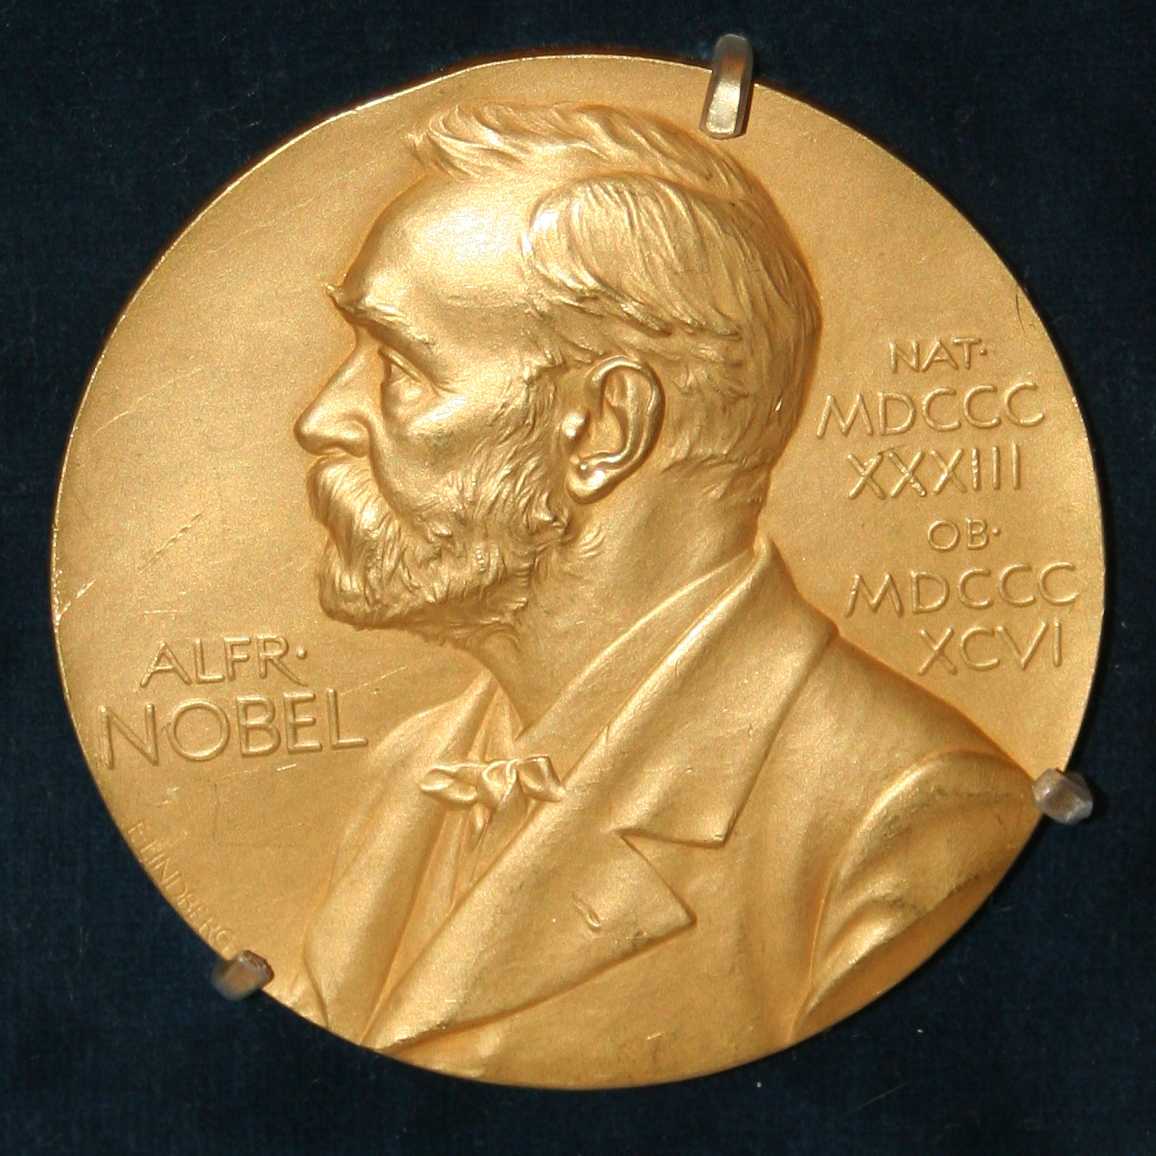 Nobel peace prize for Tunisia meditarors